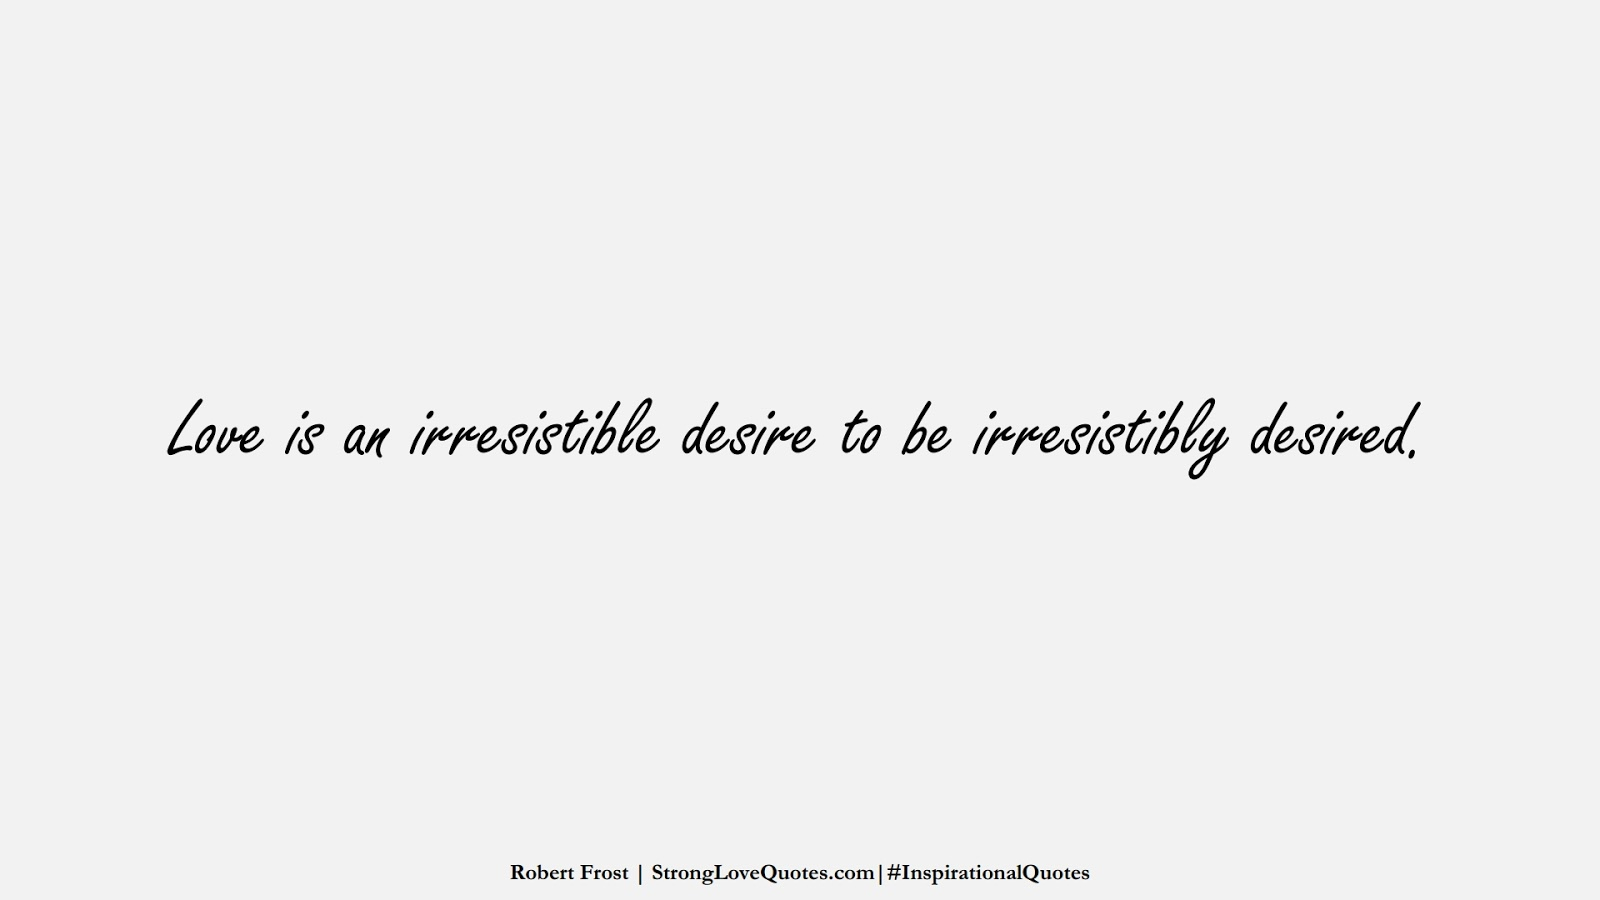 Love is an irresistible desire to be irresistibly desired. (Robert Frost);  #InspirationalQuotes